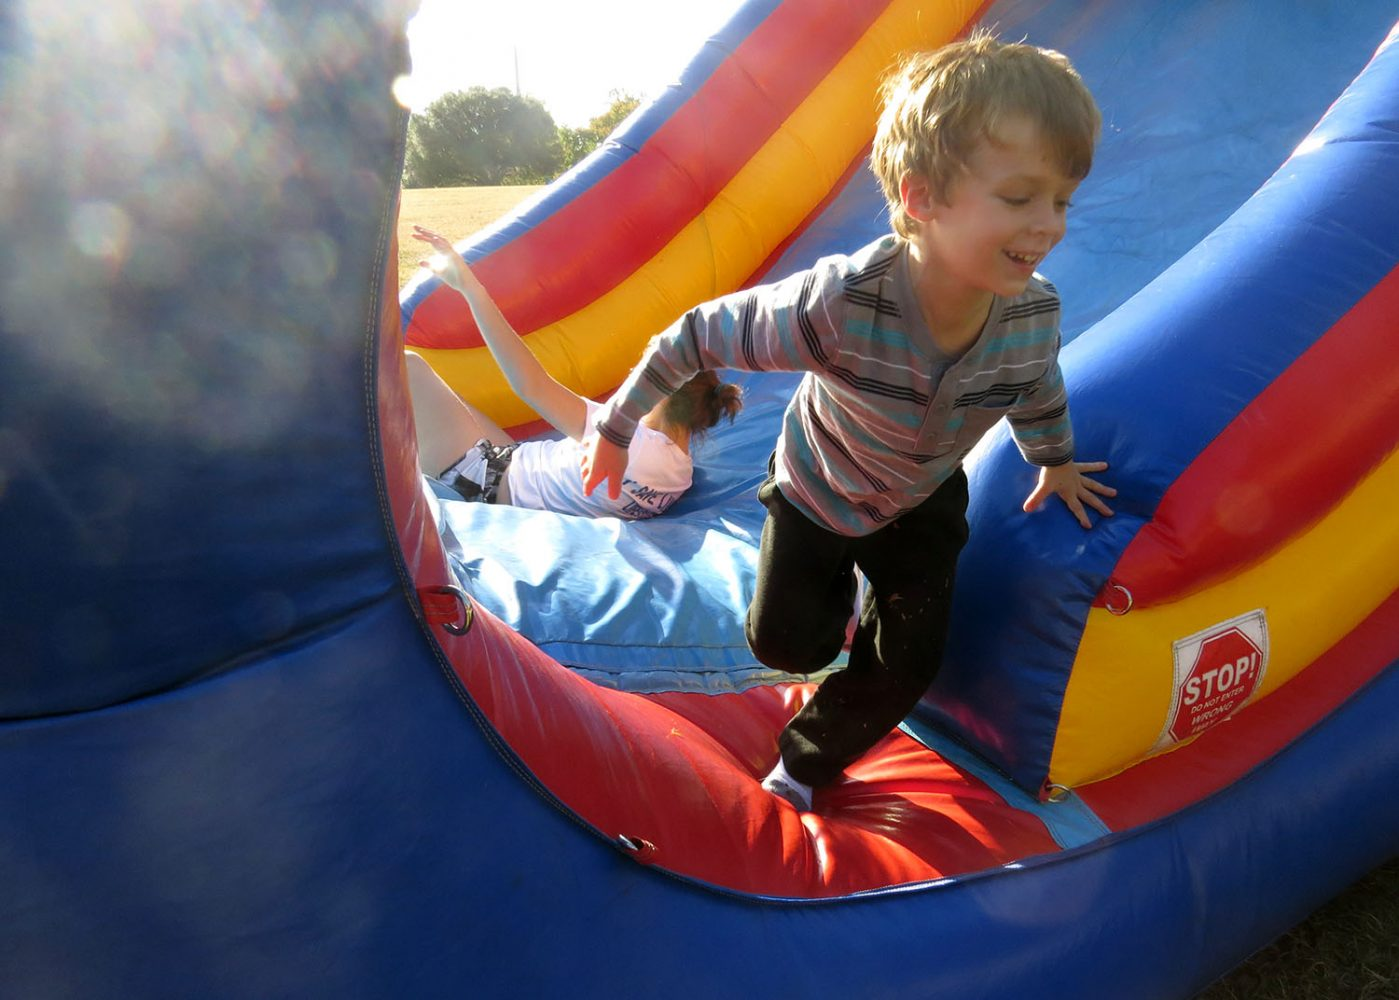 SLIDING FOR JOY- Jameson Worthington, 5, climbs out of an inflatable after sliding down it with his mom, Jessica Worthington, at Keyes Governing Body's Bounce Your Stress Away event on Flavet Field on Sunday, December 4, 2016. (photo by Katelyn Newberg)